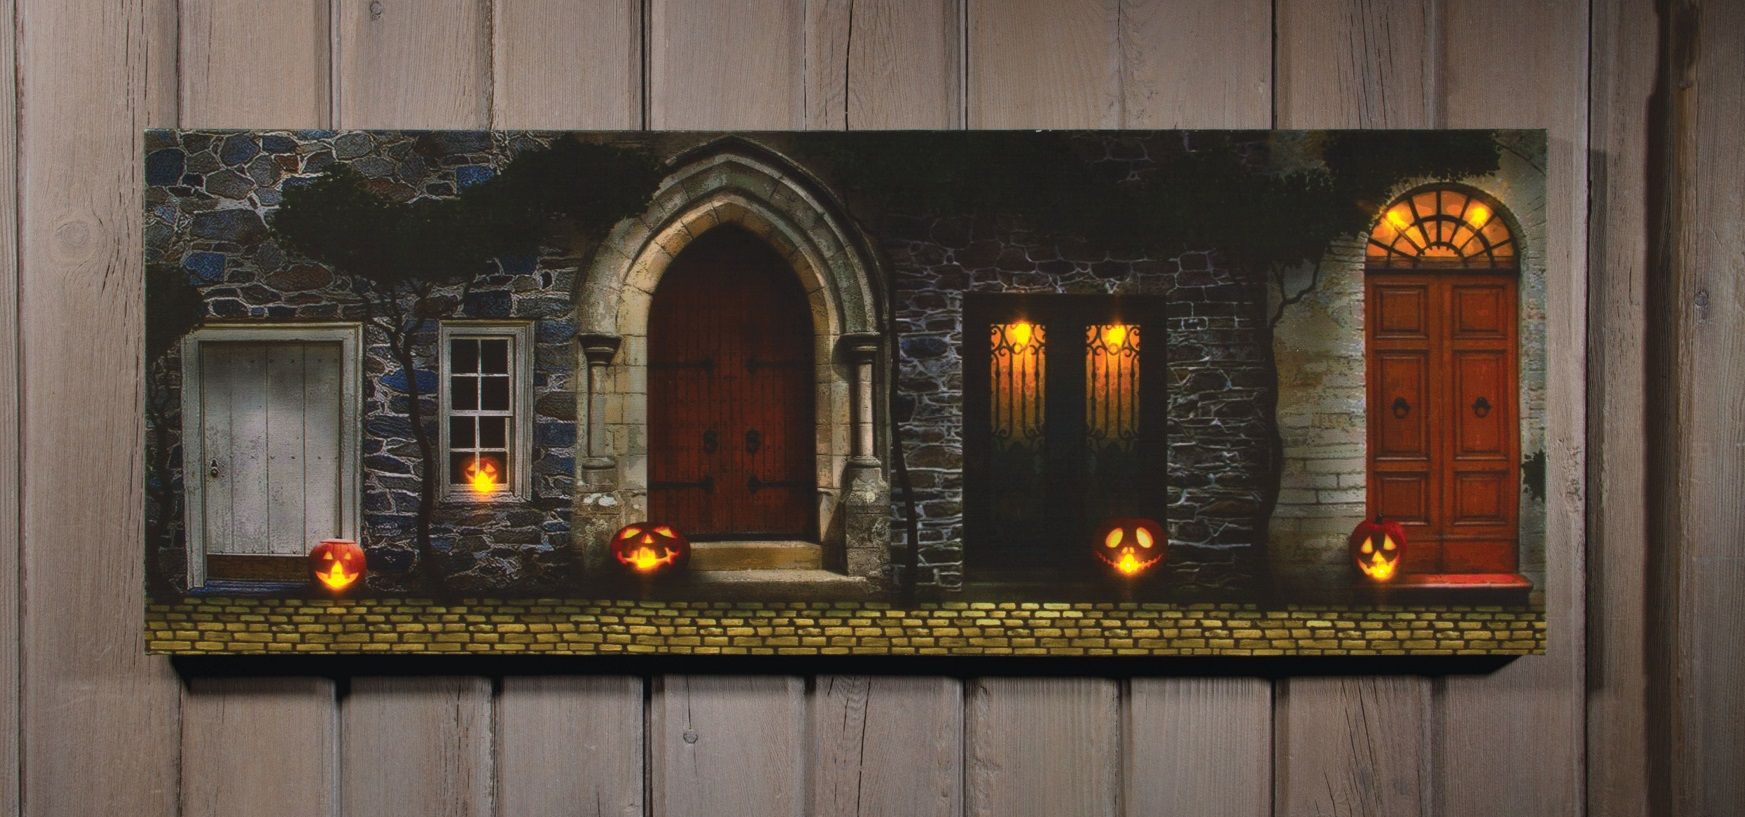 Radiance Lighted Canvas Large Halloween Front Door With Jack O Lantern Shelley B Home And Holiday Radiance Lighted Canvas Halloween Front Doors Lighted Canvas